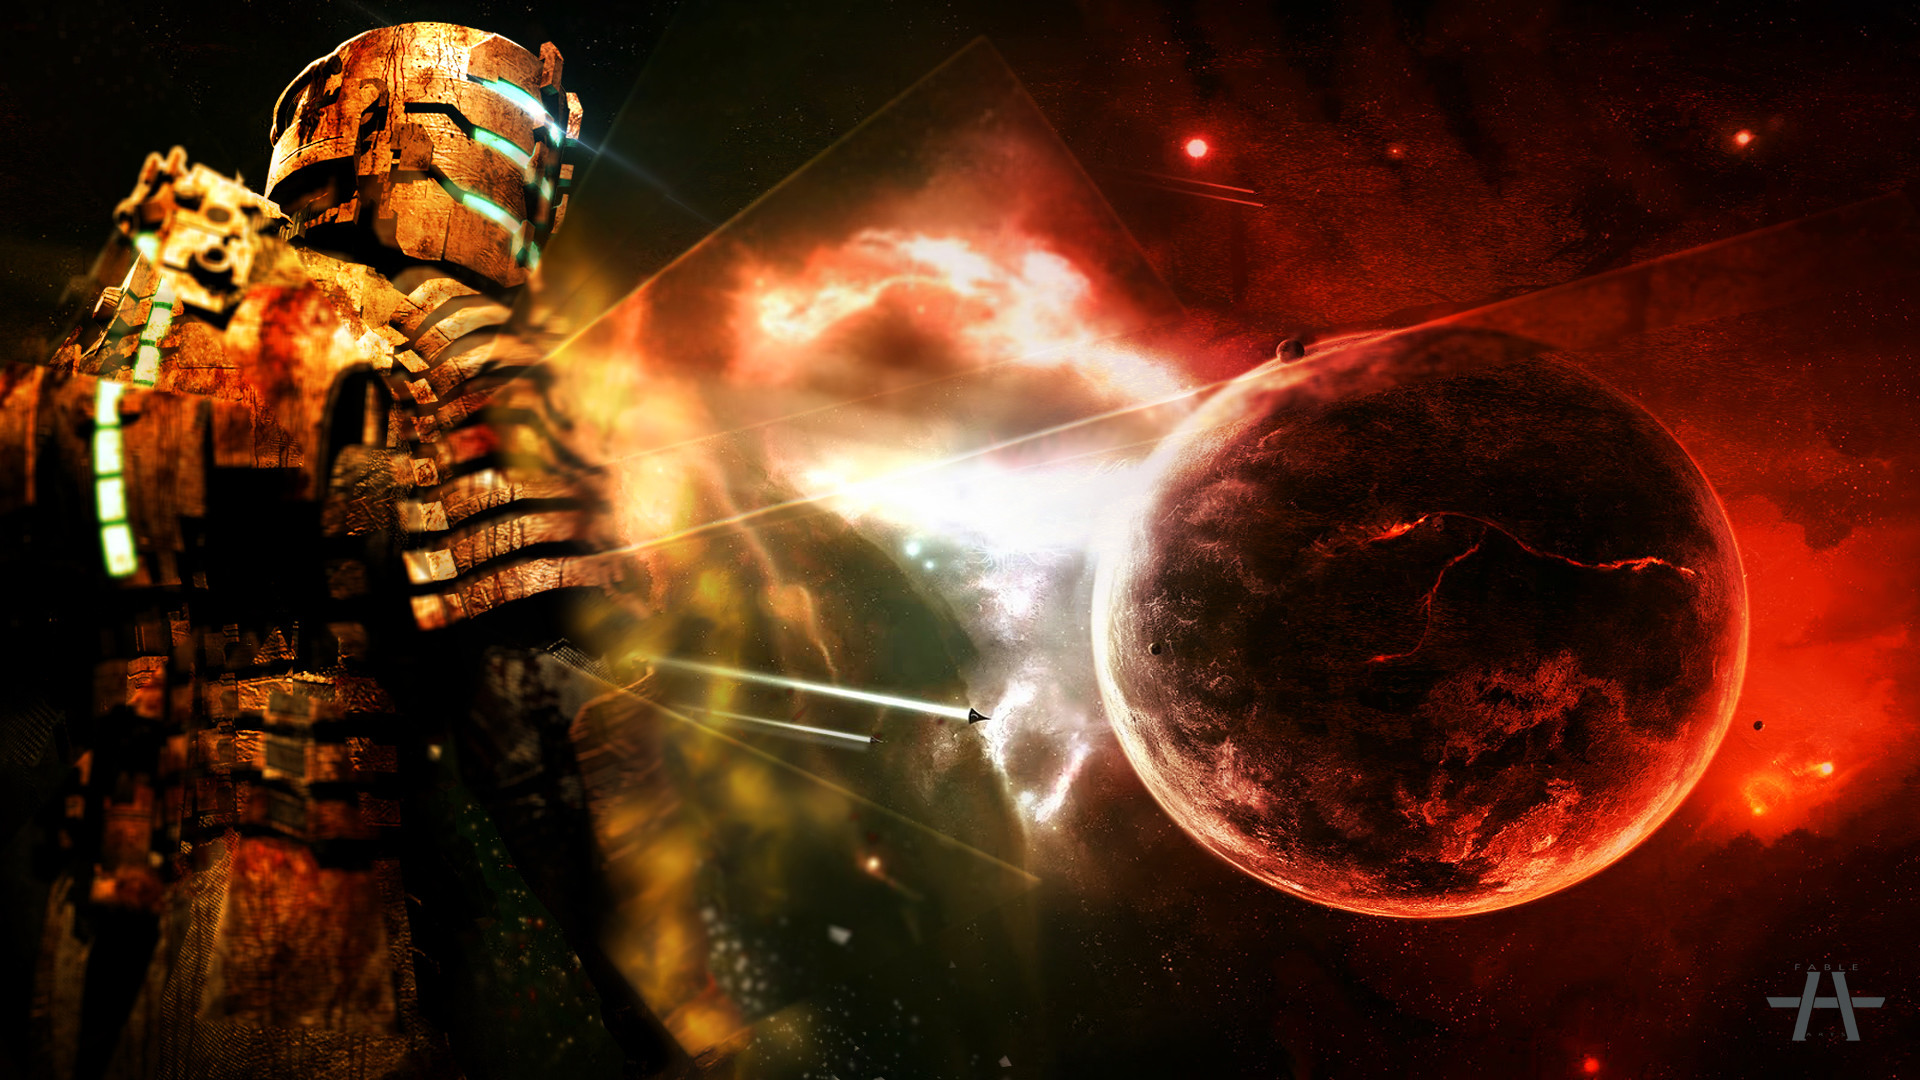 Outer Space Wallpaper - Doctor Who Space Background , HD Wallpaper & Backgrounds